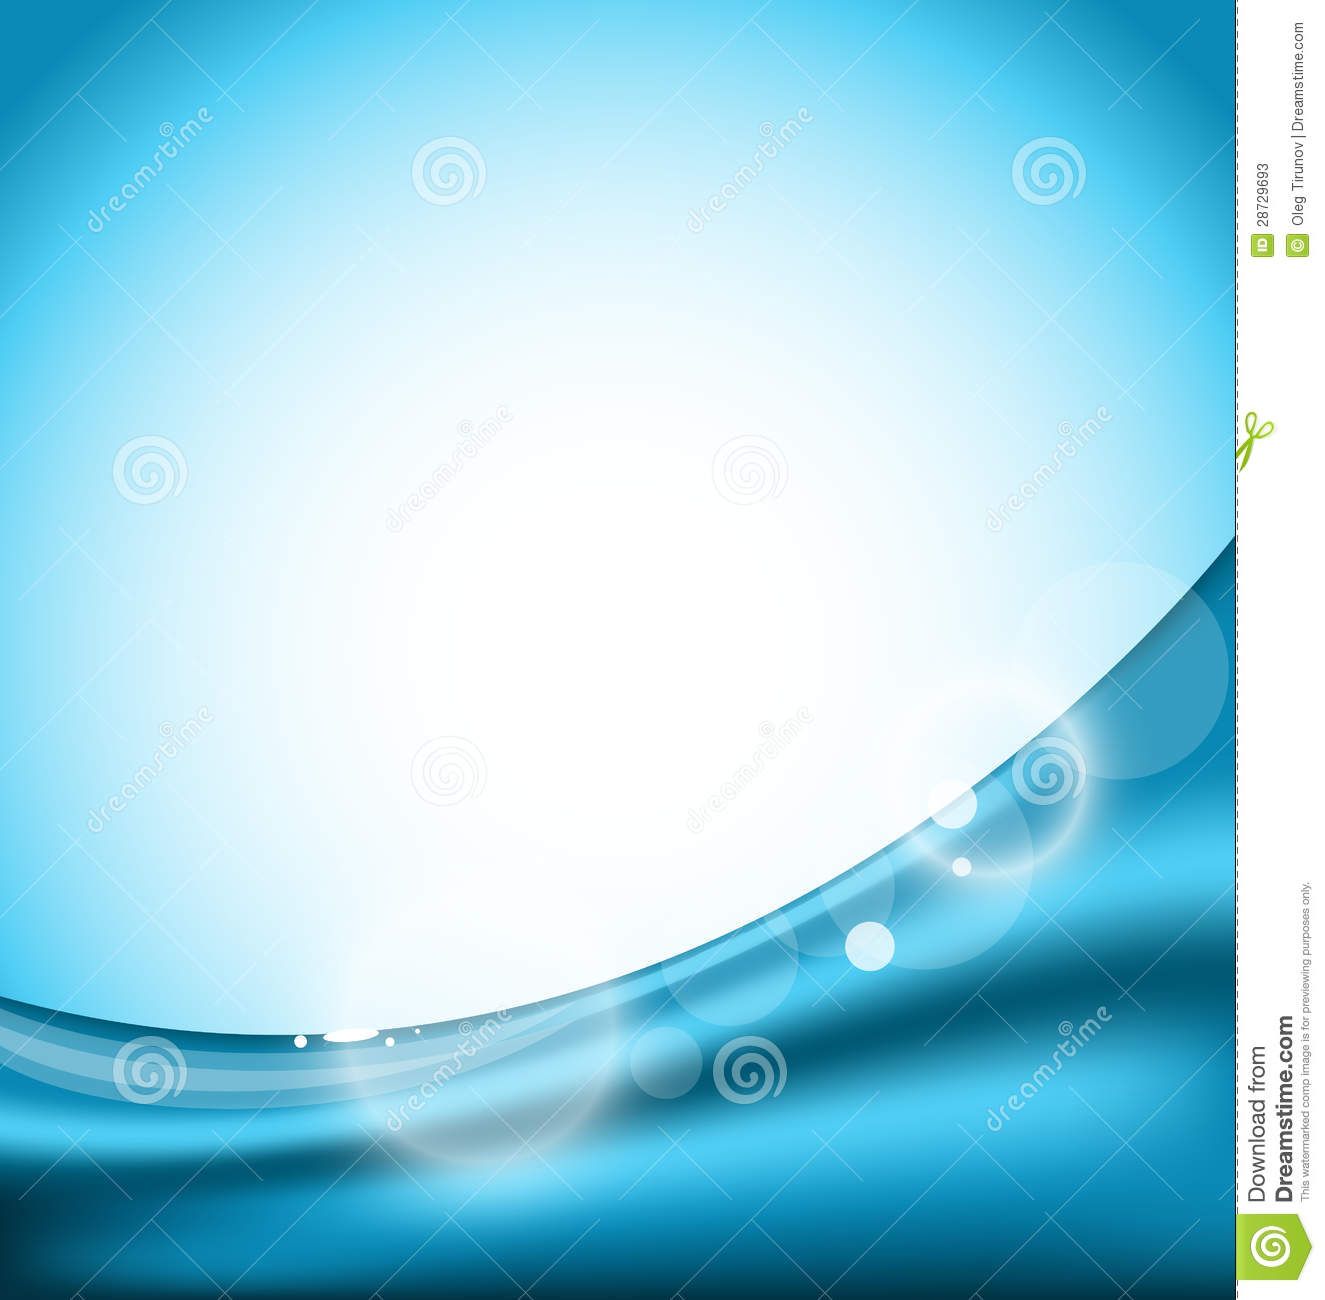 Abstract Blue Background, Design Template Stock Photos